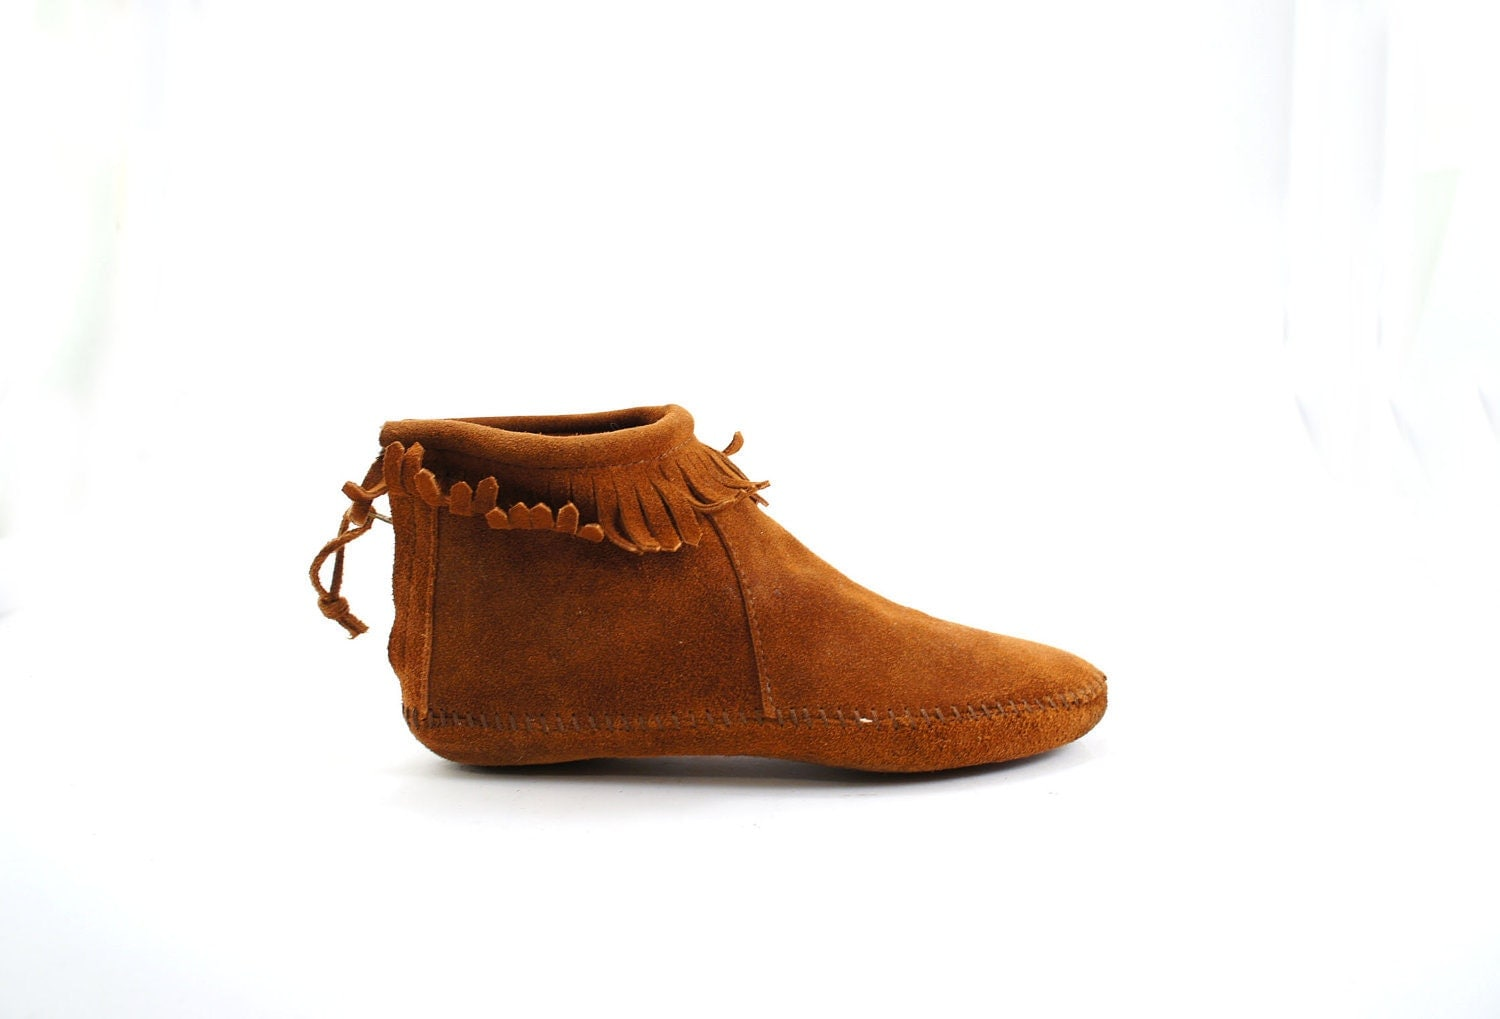 moccasin ankle boots in brown suede leather with by